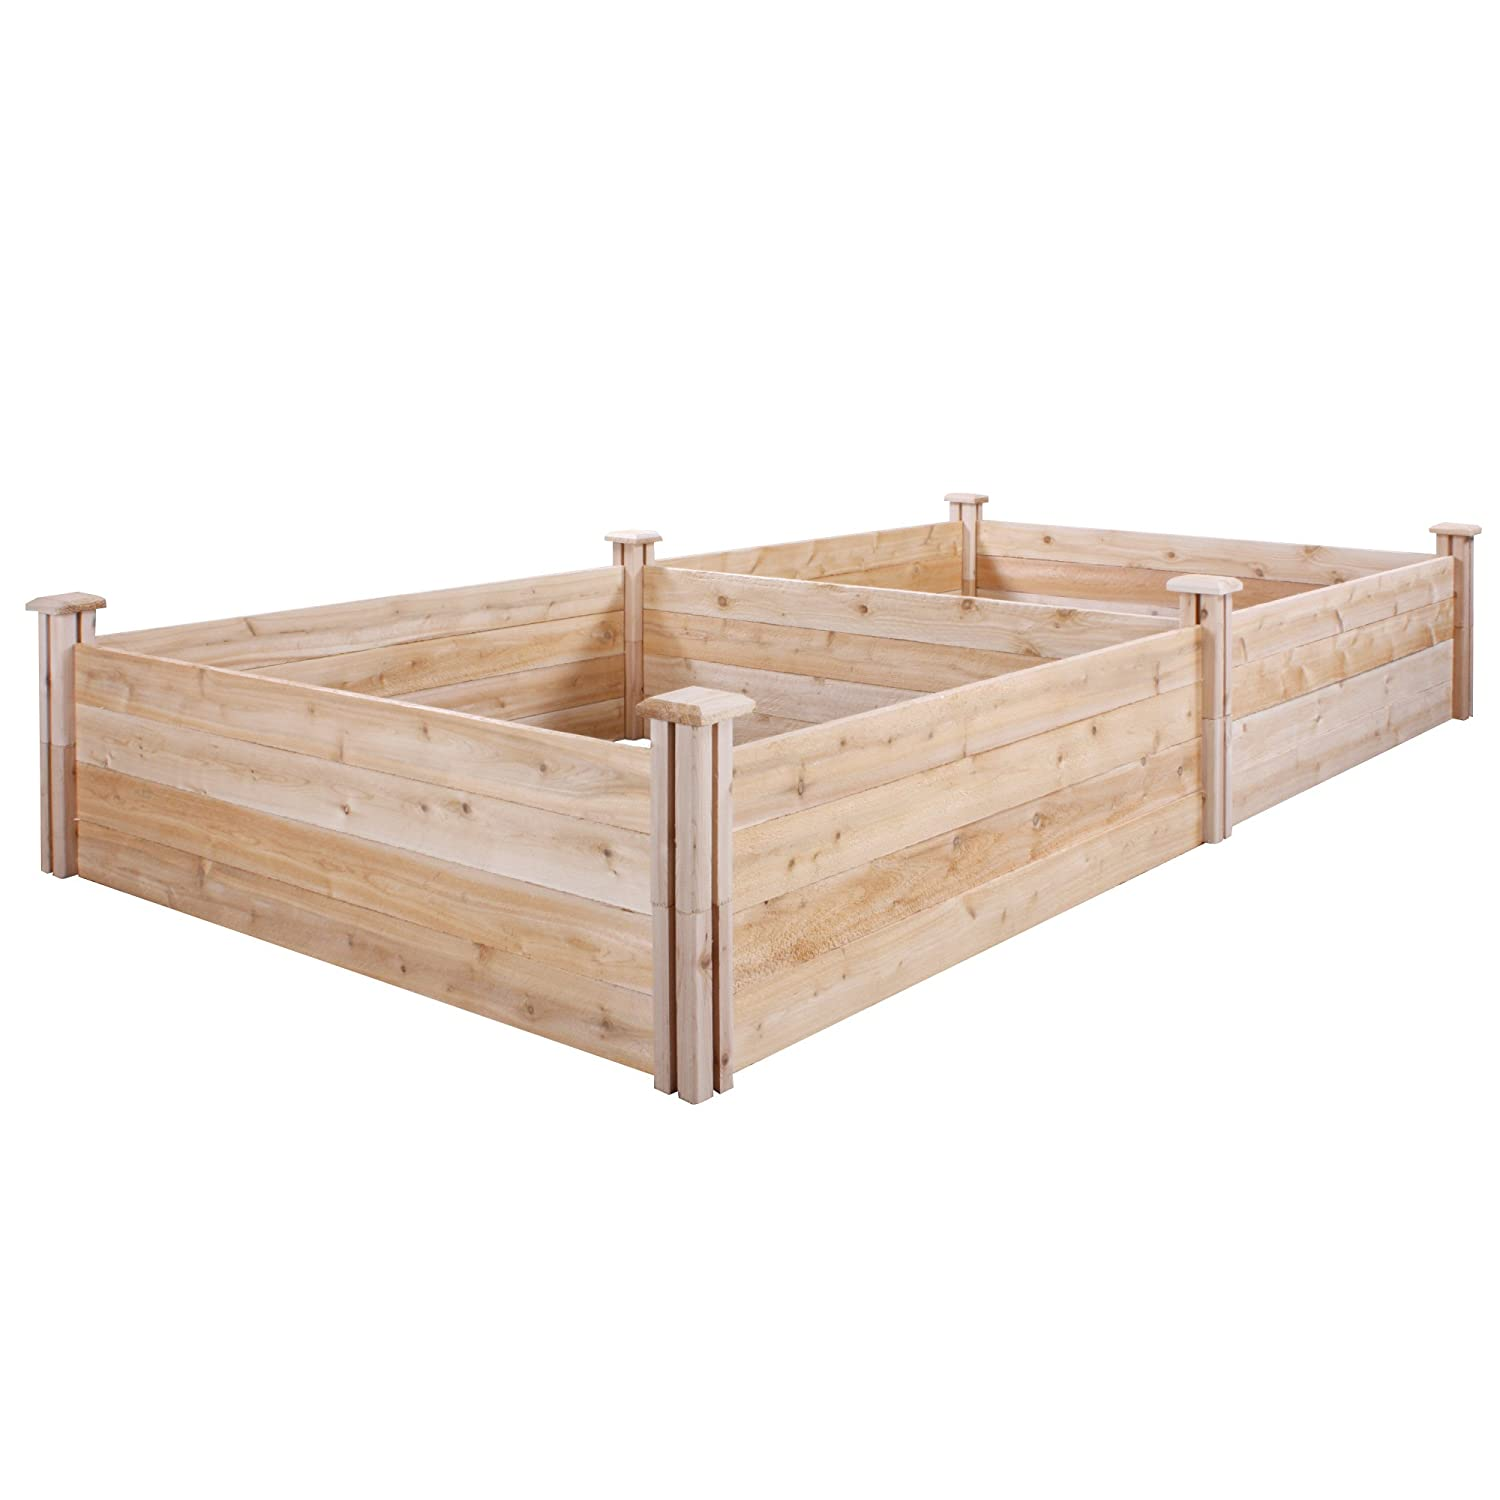 dovetail two tiers beds fence p bed raised the garden greenes